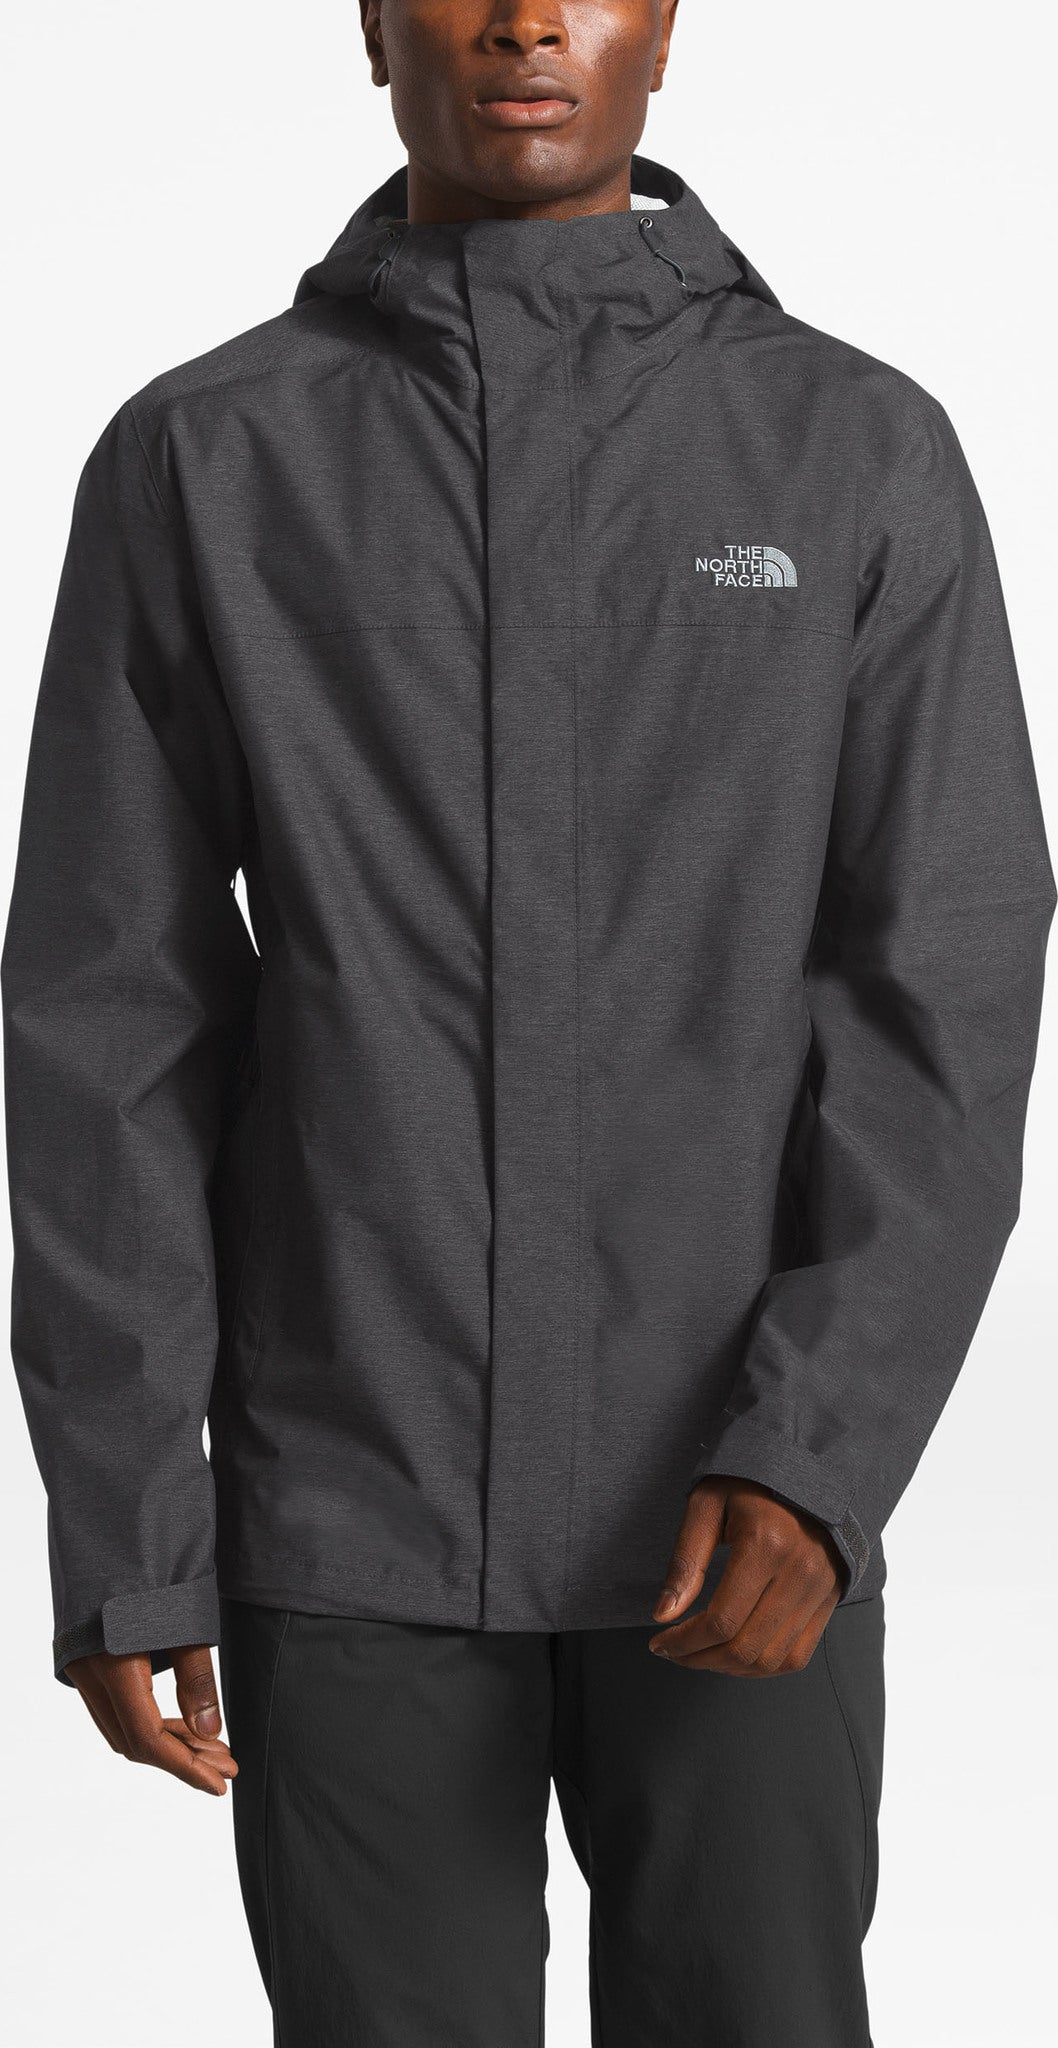 The North Face Venture 2 Jacket Tall Men's